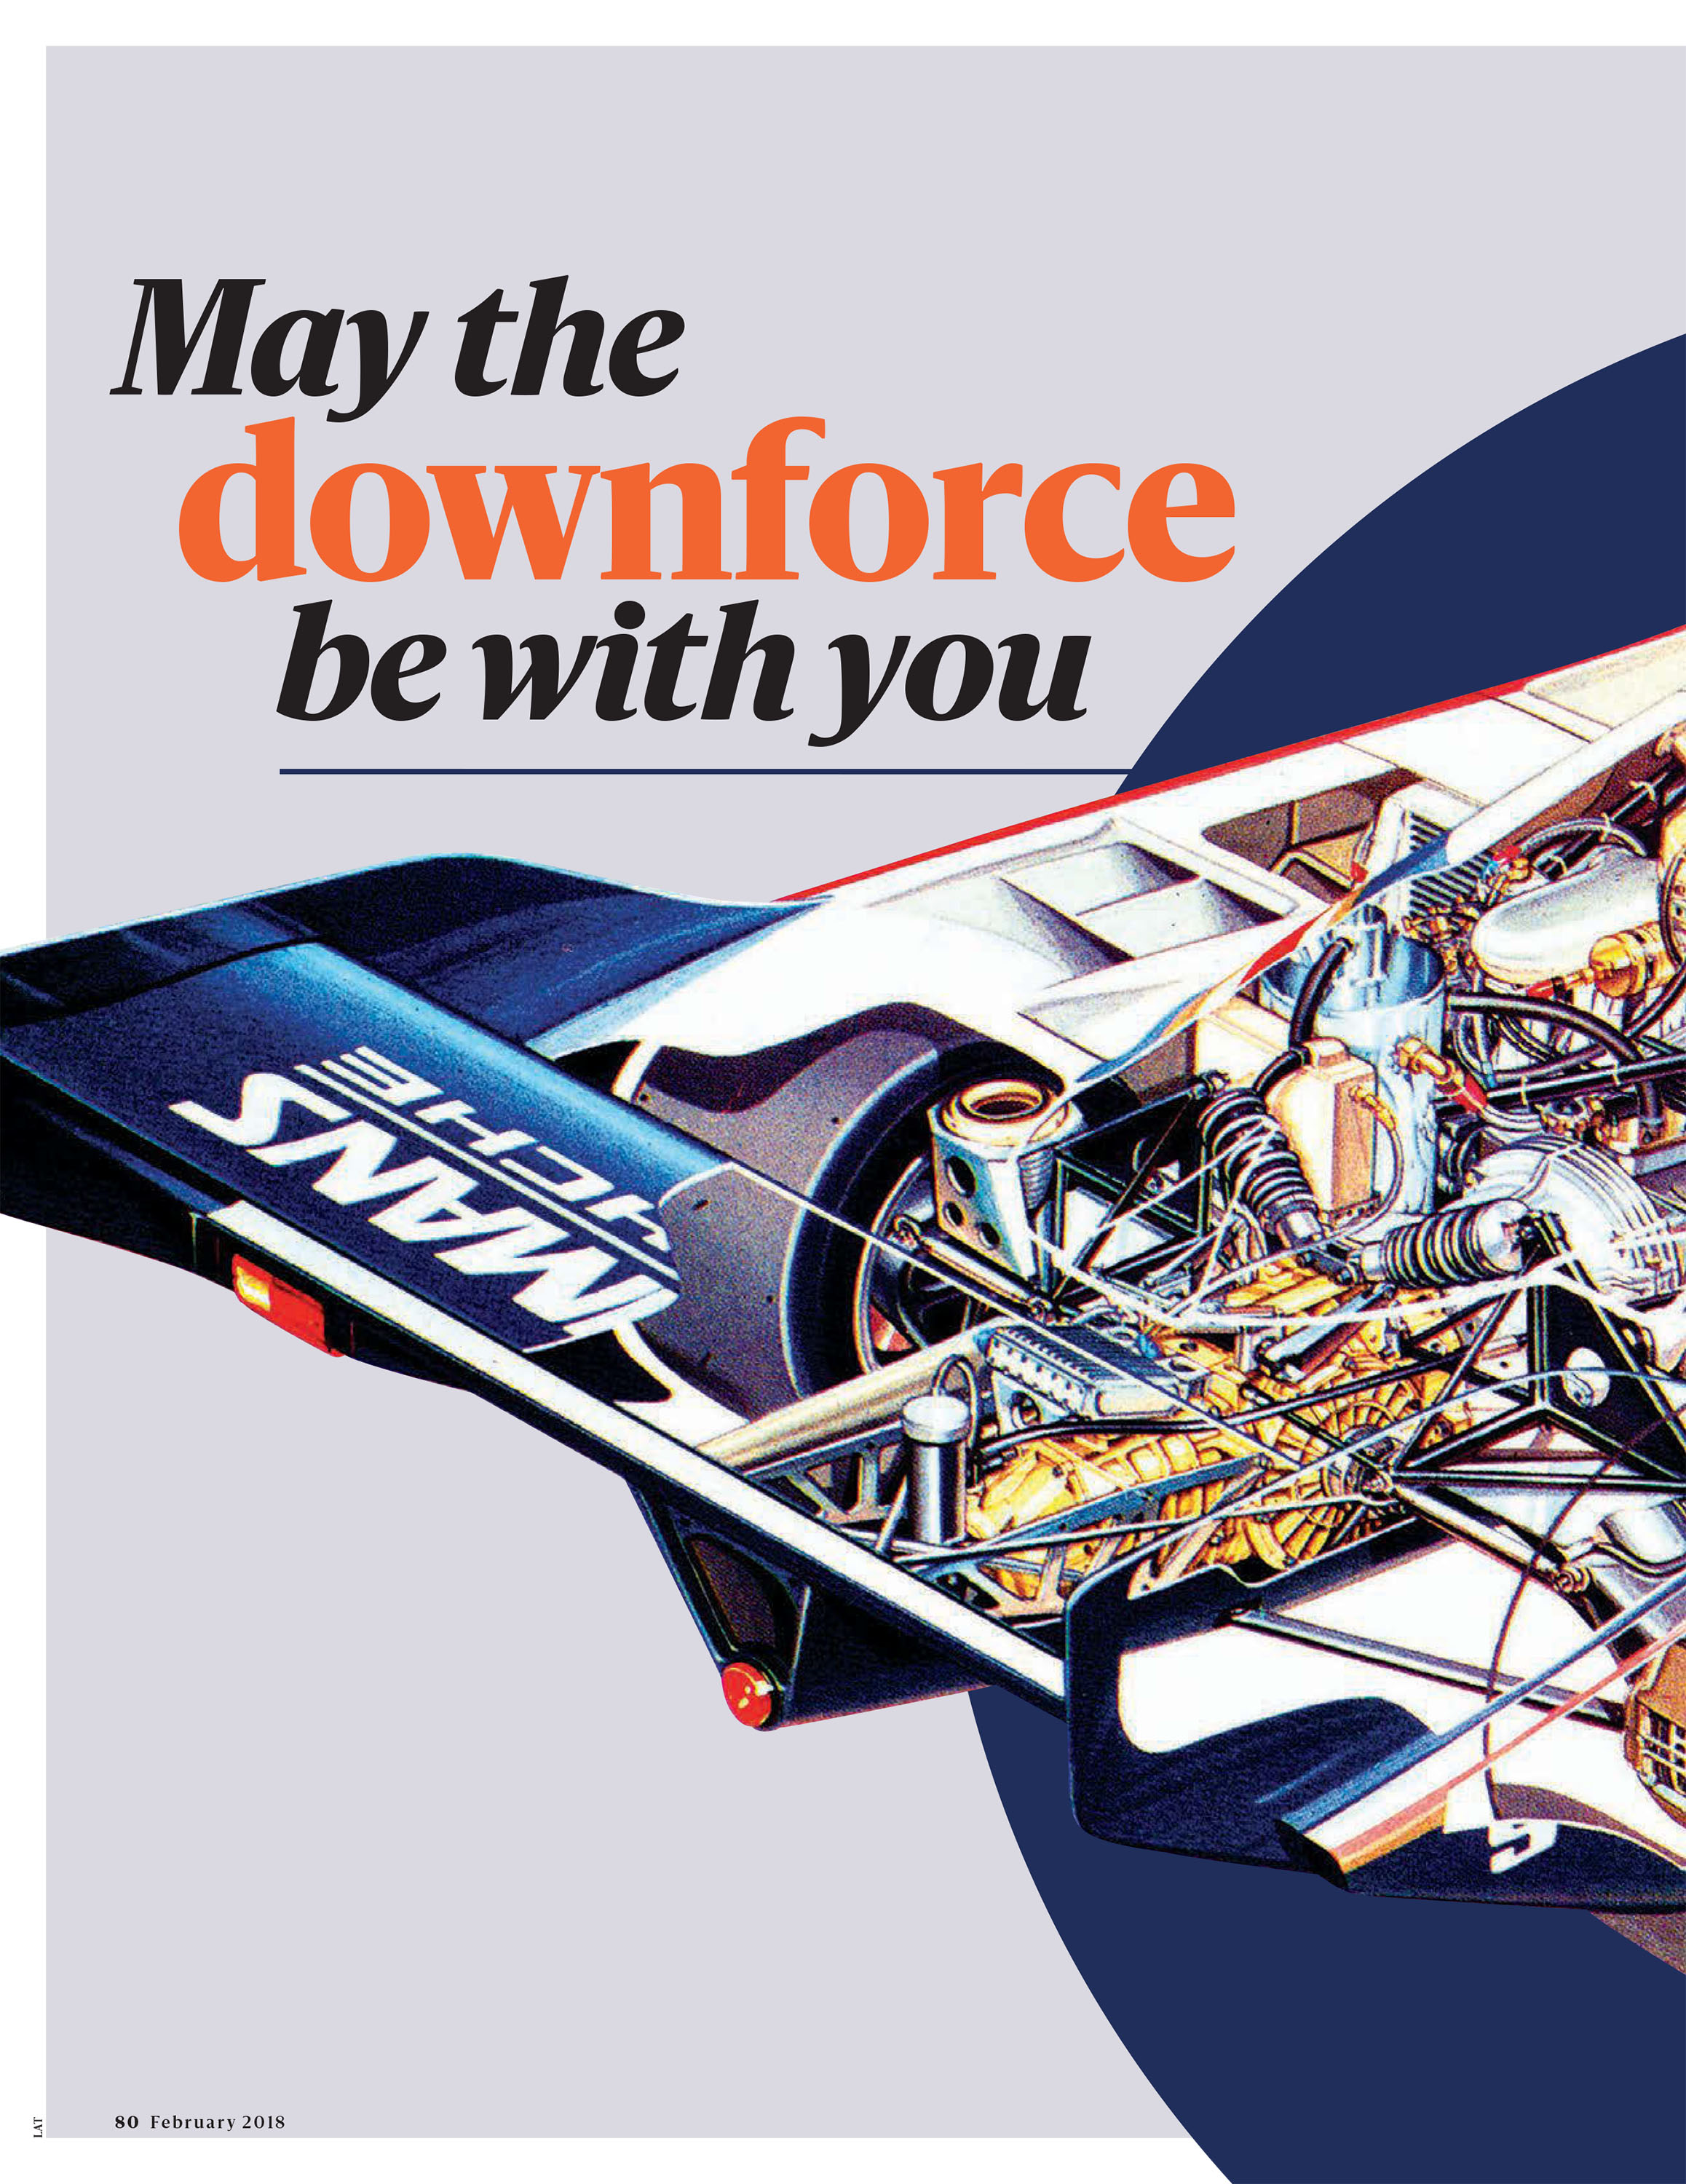 May the downforce be with you image